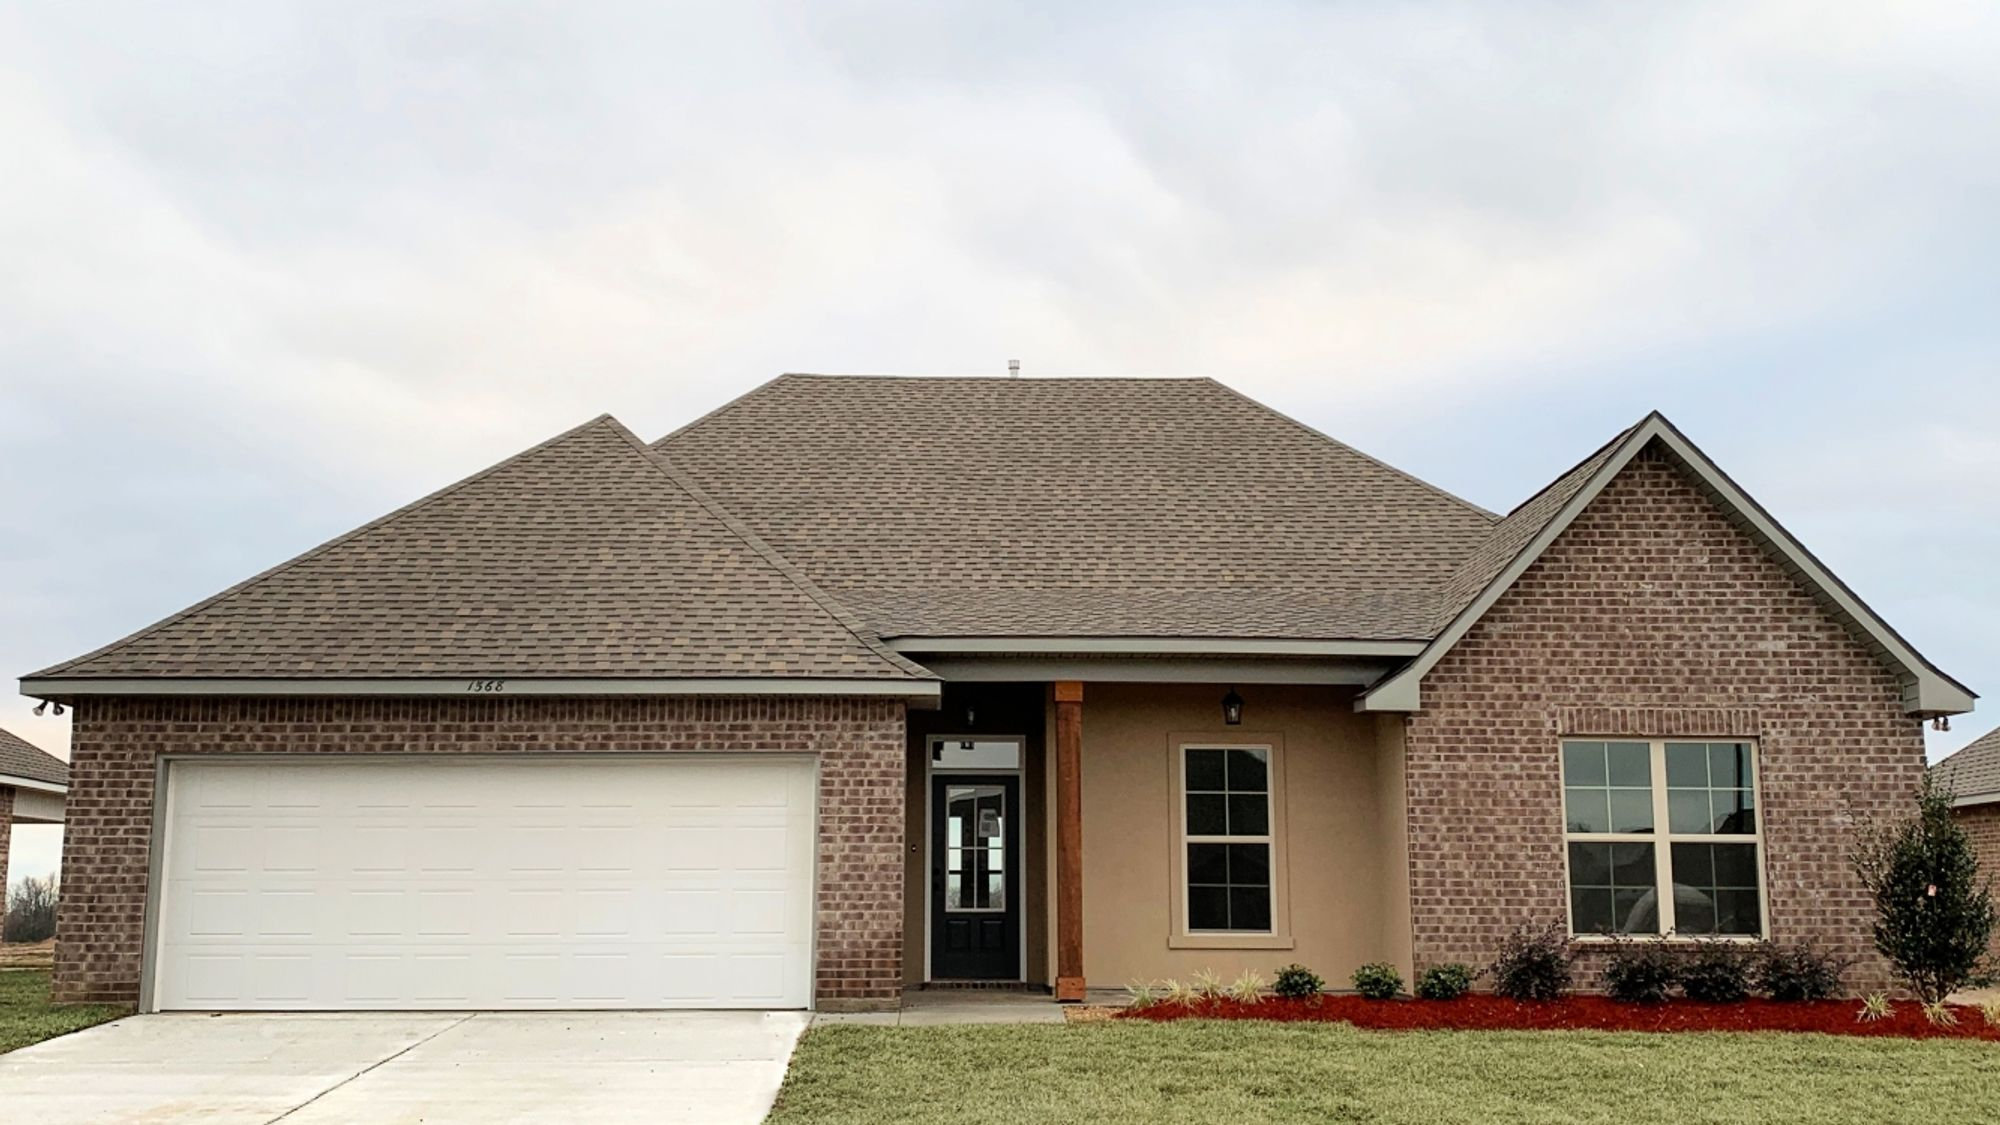 Front View - Cognac IV A - Fairview Gardens Community - DSLD Homes Zachary